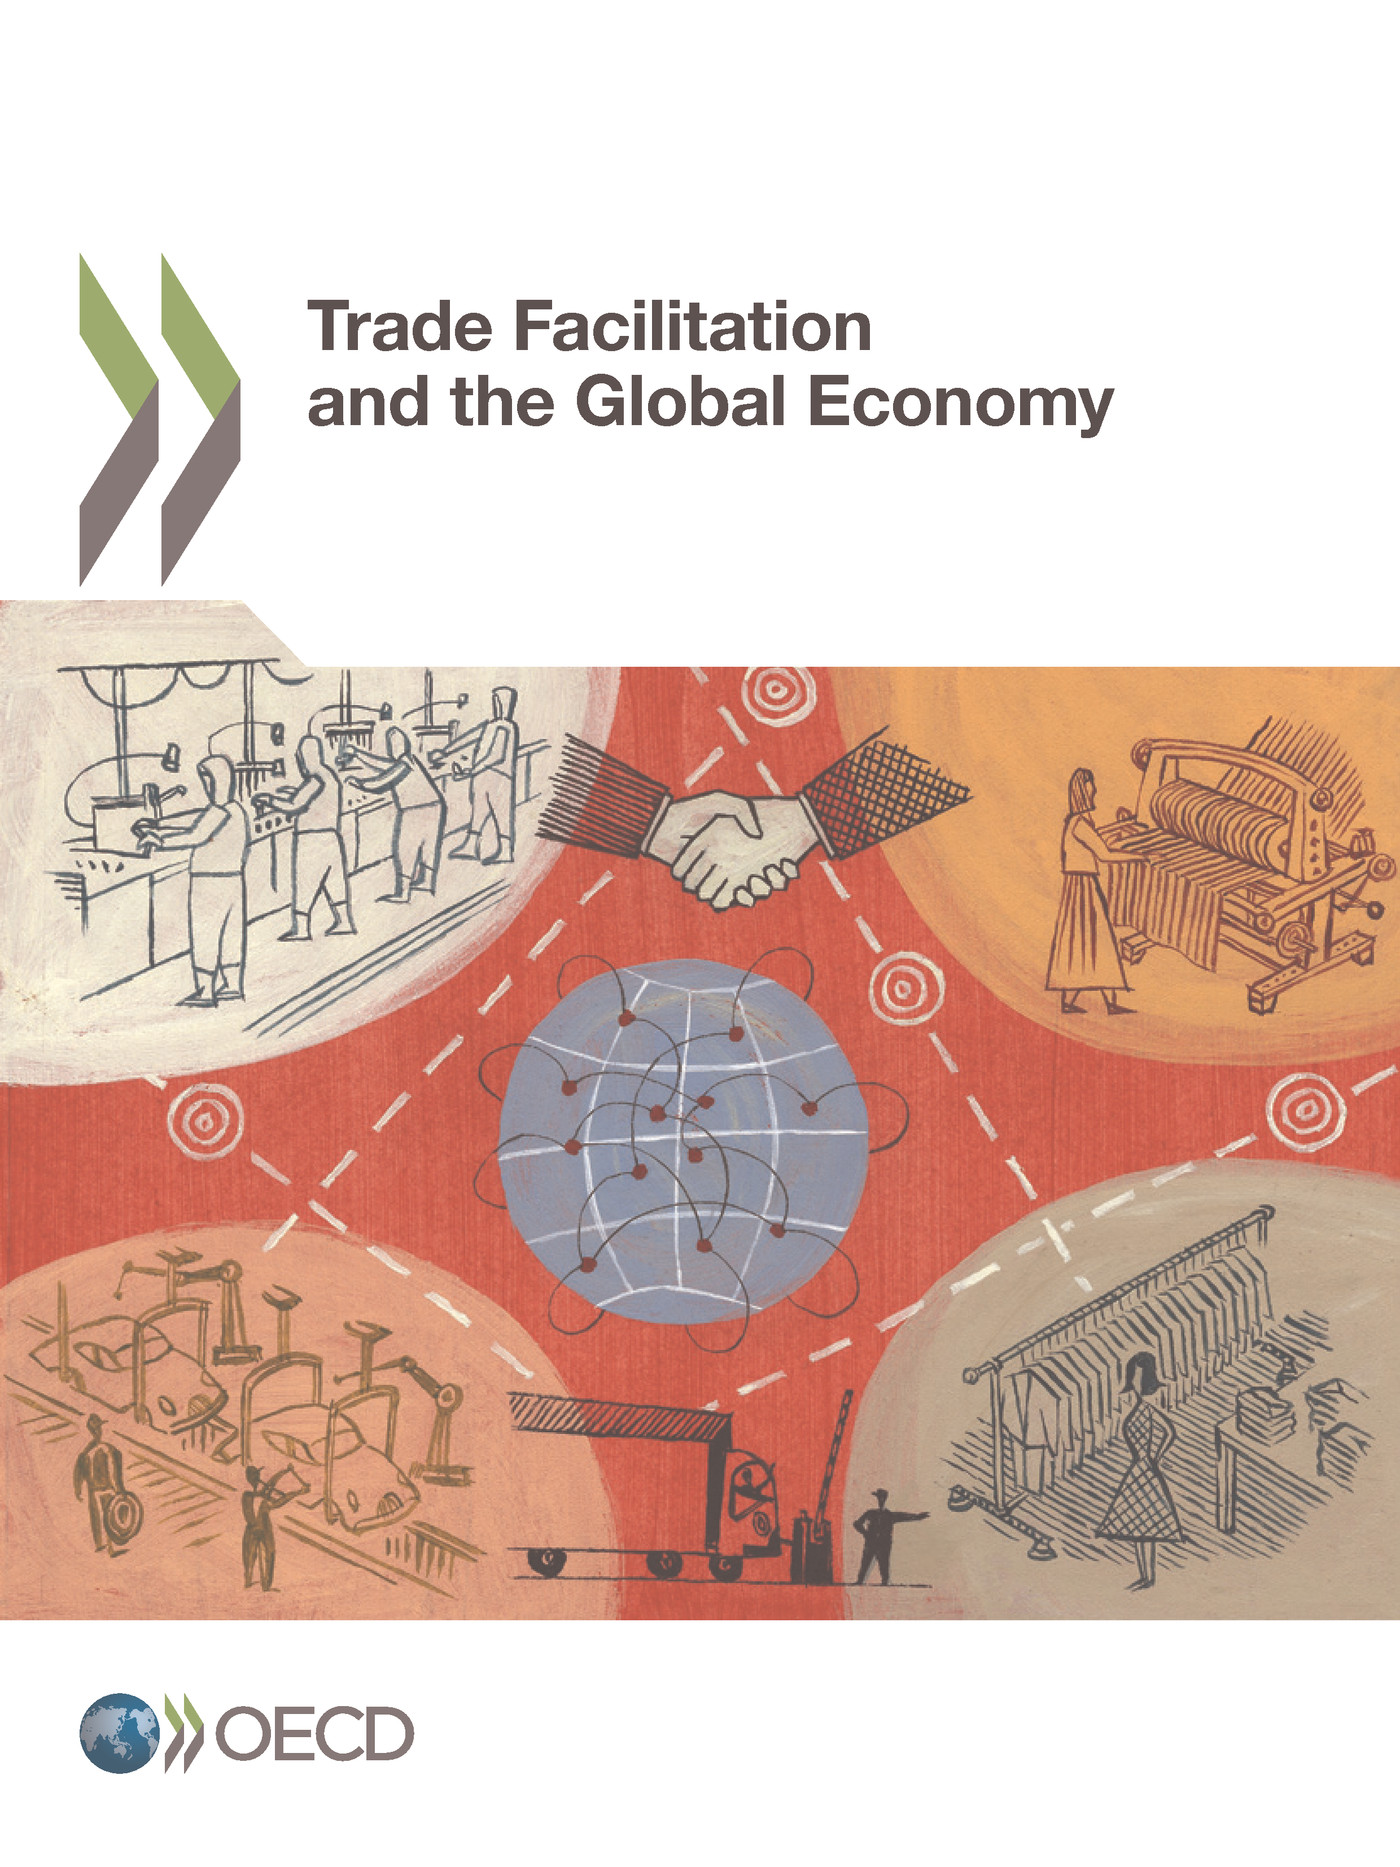 Trade Facilitation and the Global Economy De  Collectif - OCDE / OECD